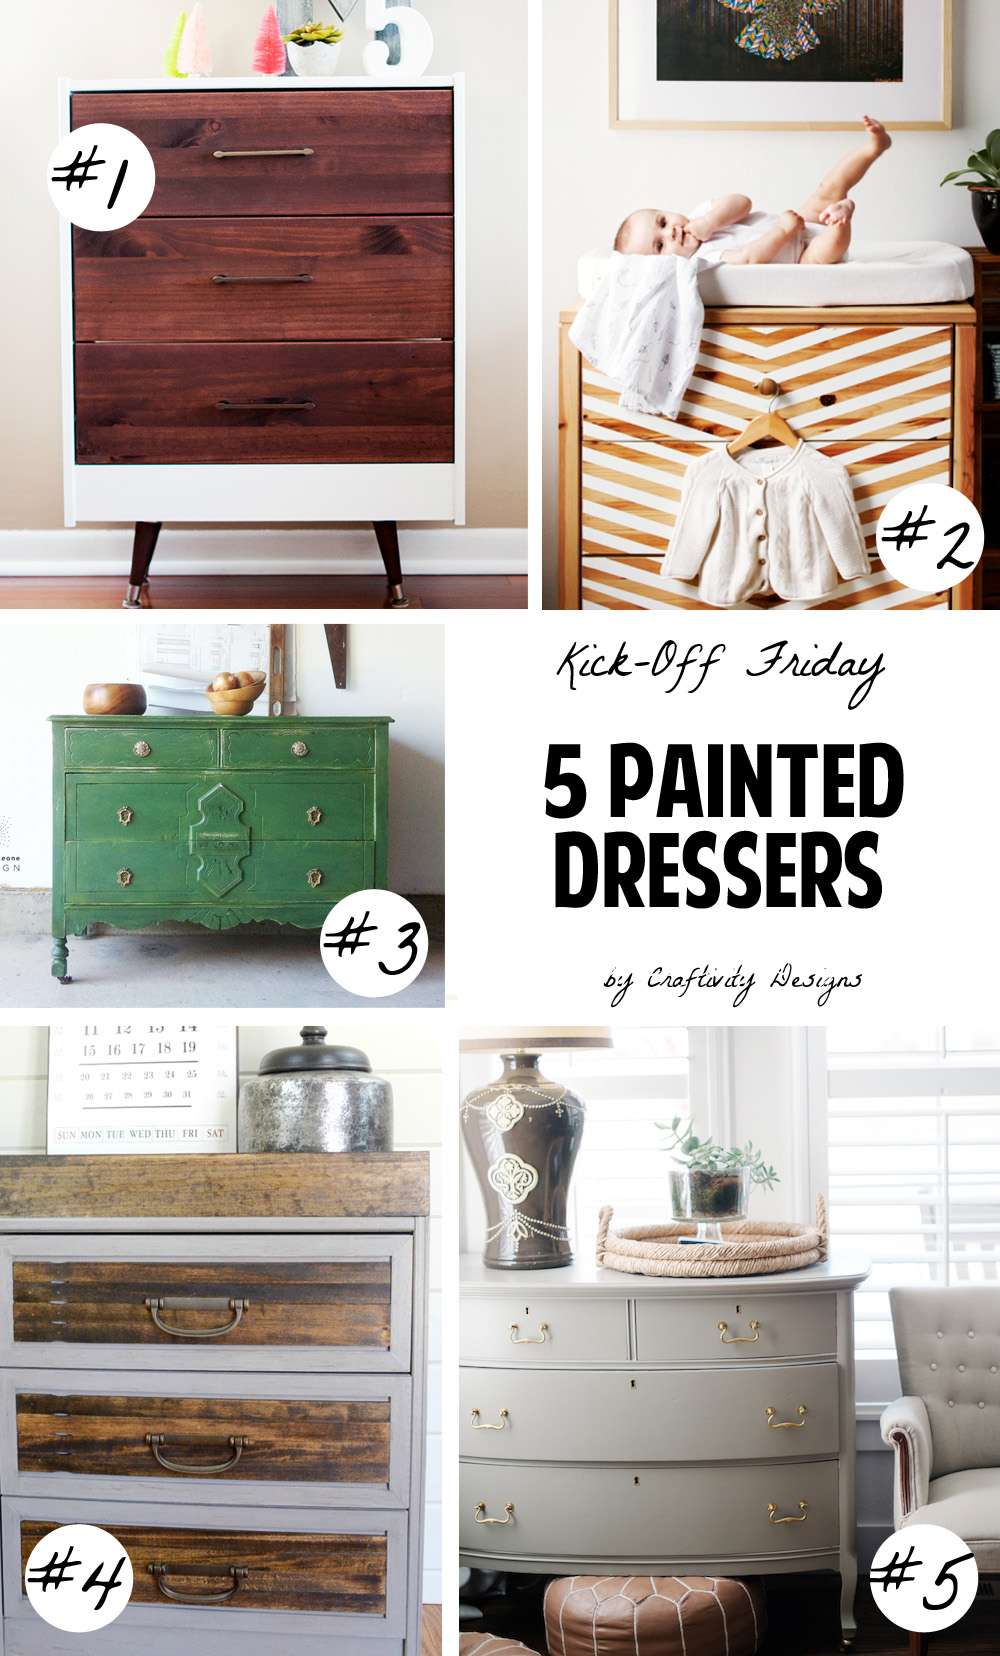 5 Painted Dressers, Painted Furniture Ideas, Furniture Makeovers,  Repurposed Furniture, #repurpose